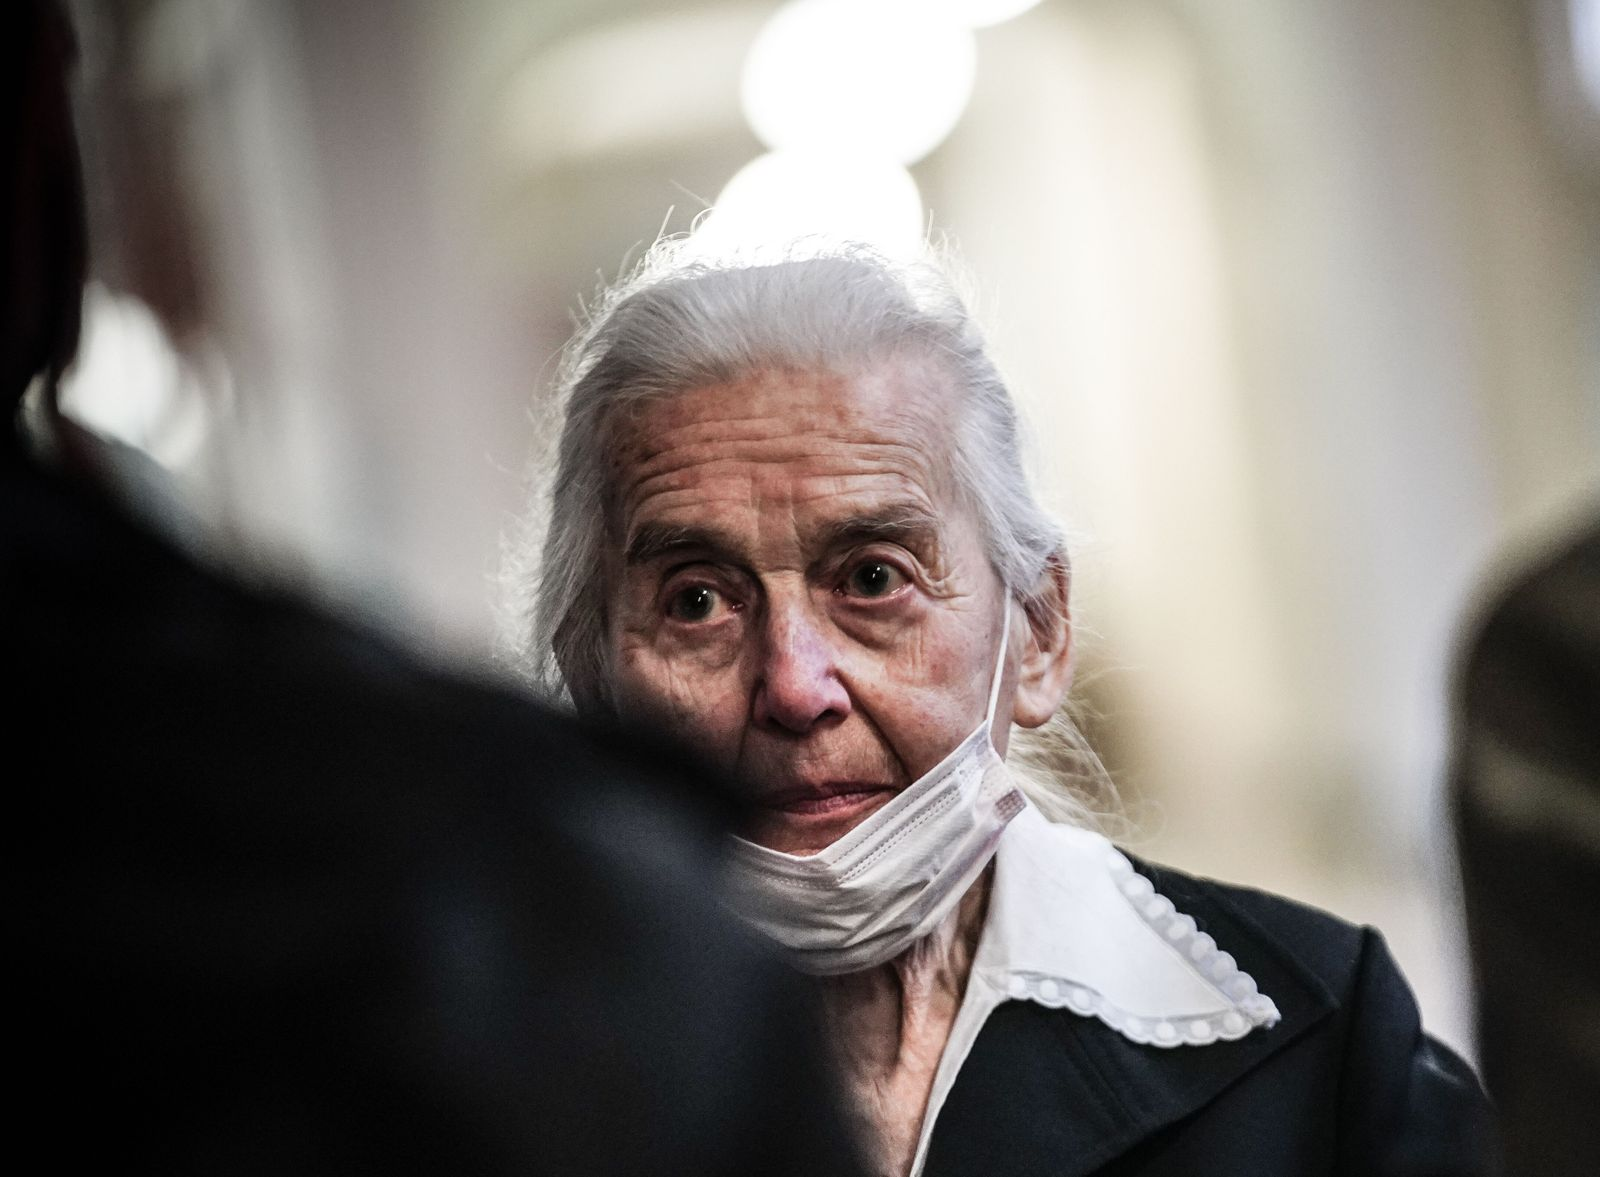 Trial against The Holocaust denier Ursula Haverbeck, Berlin, Germany - 17 Nov 2020